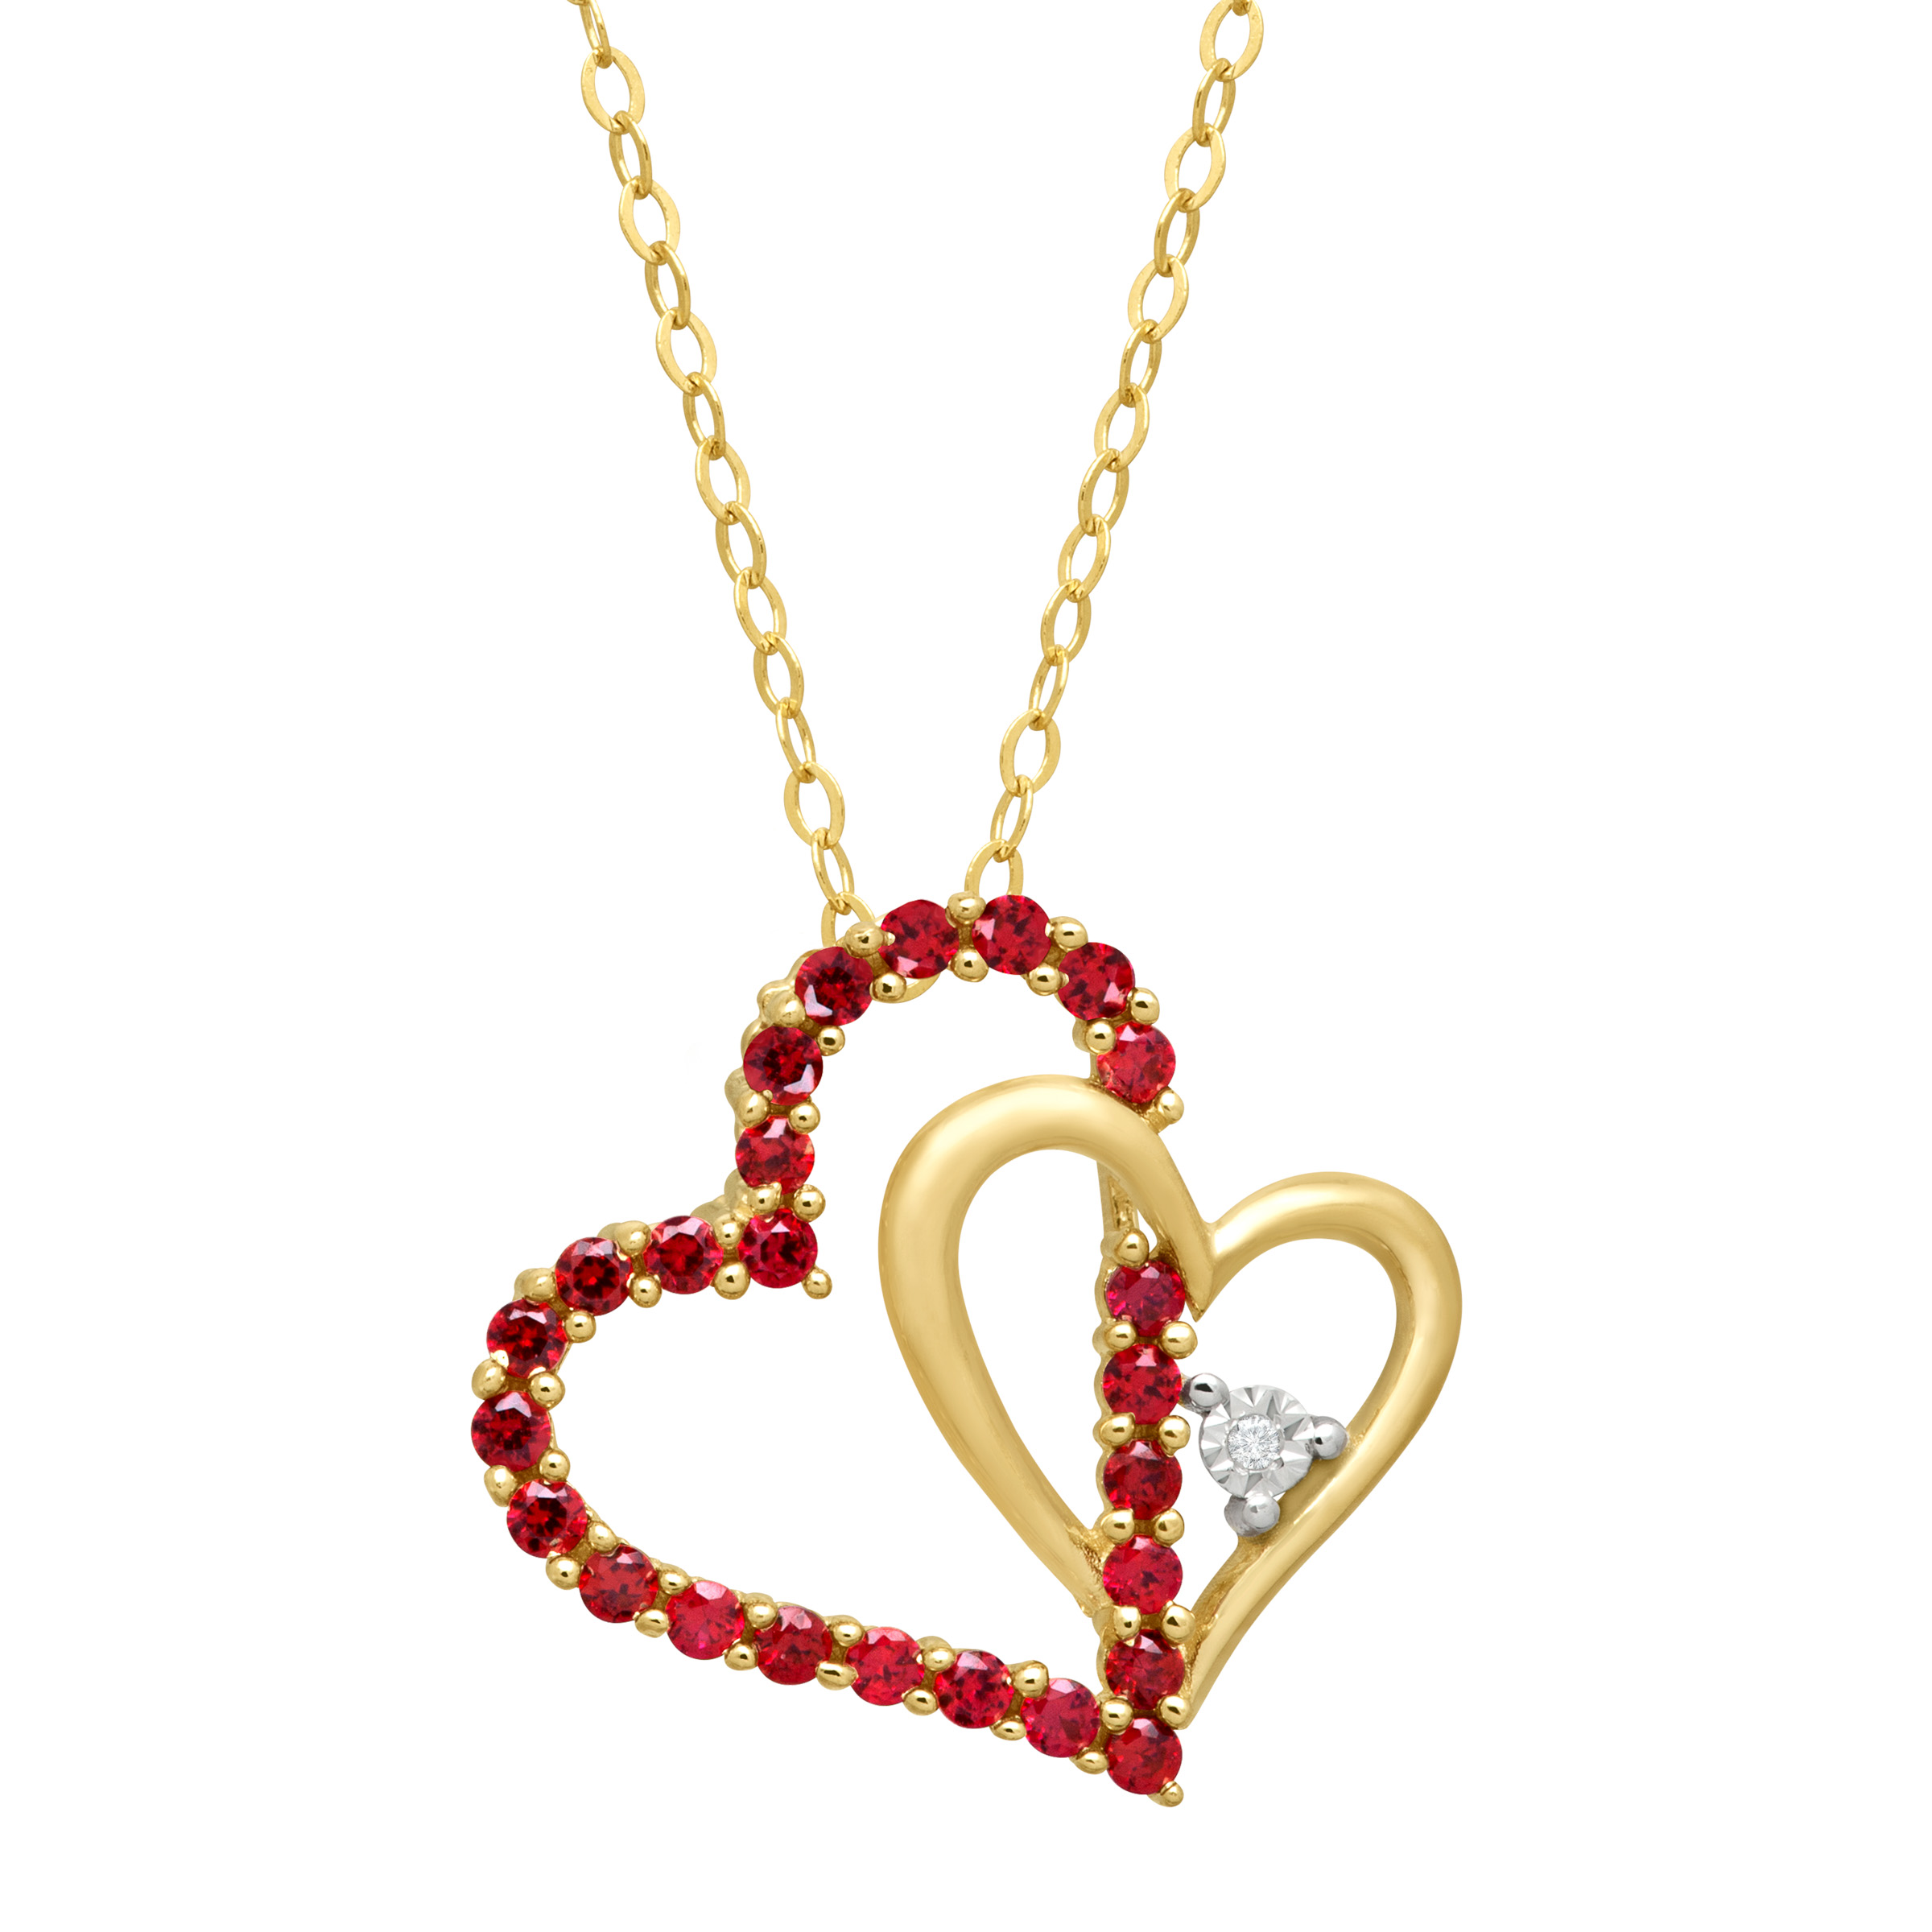 1 2 ct Created Ruby Double Heart Pendant Necklace with Diamond in 14kt Gold by Richline Group